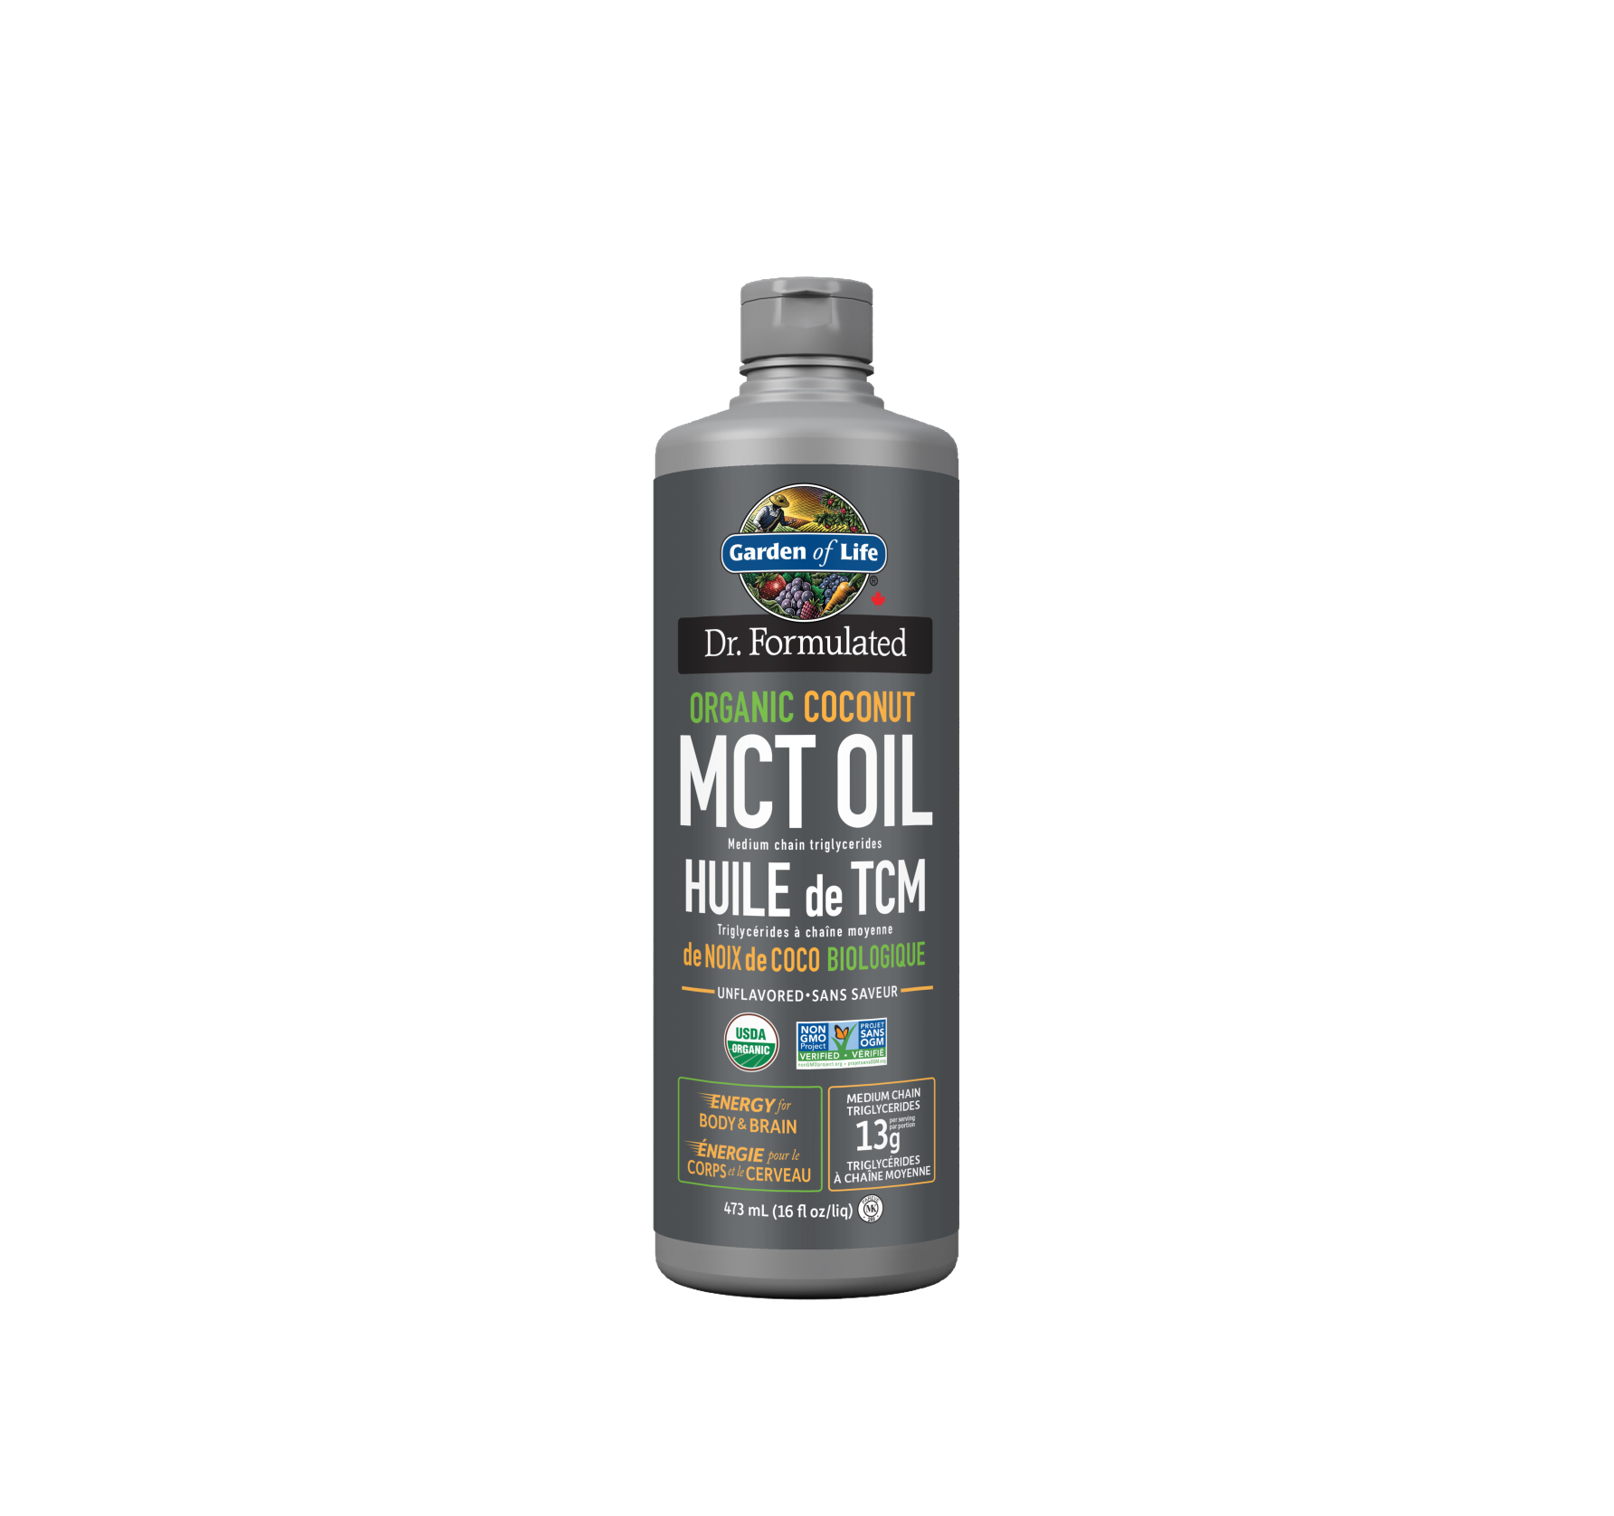 Garden of Life Dr. Formulated 100% Organic MCT Oil 473ml